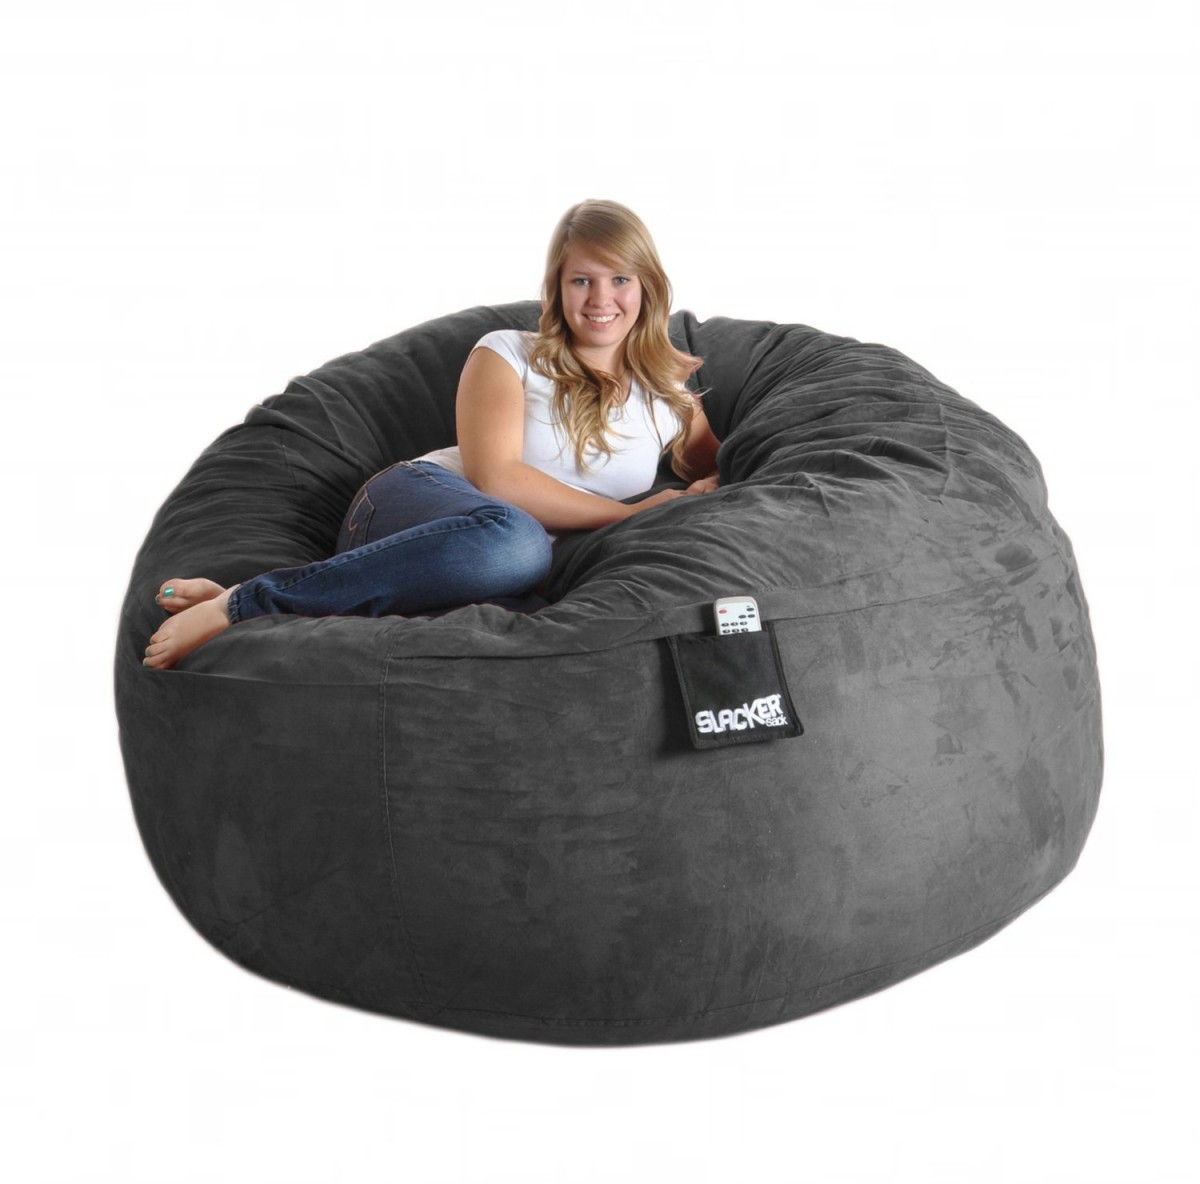 Black Bean Bag Chairs